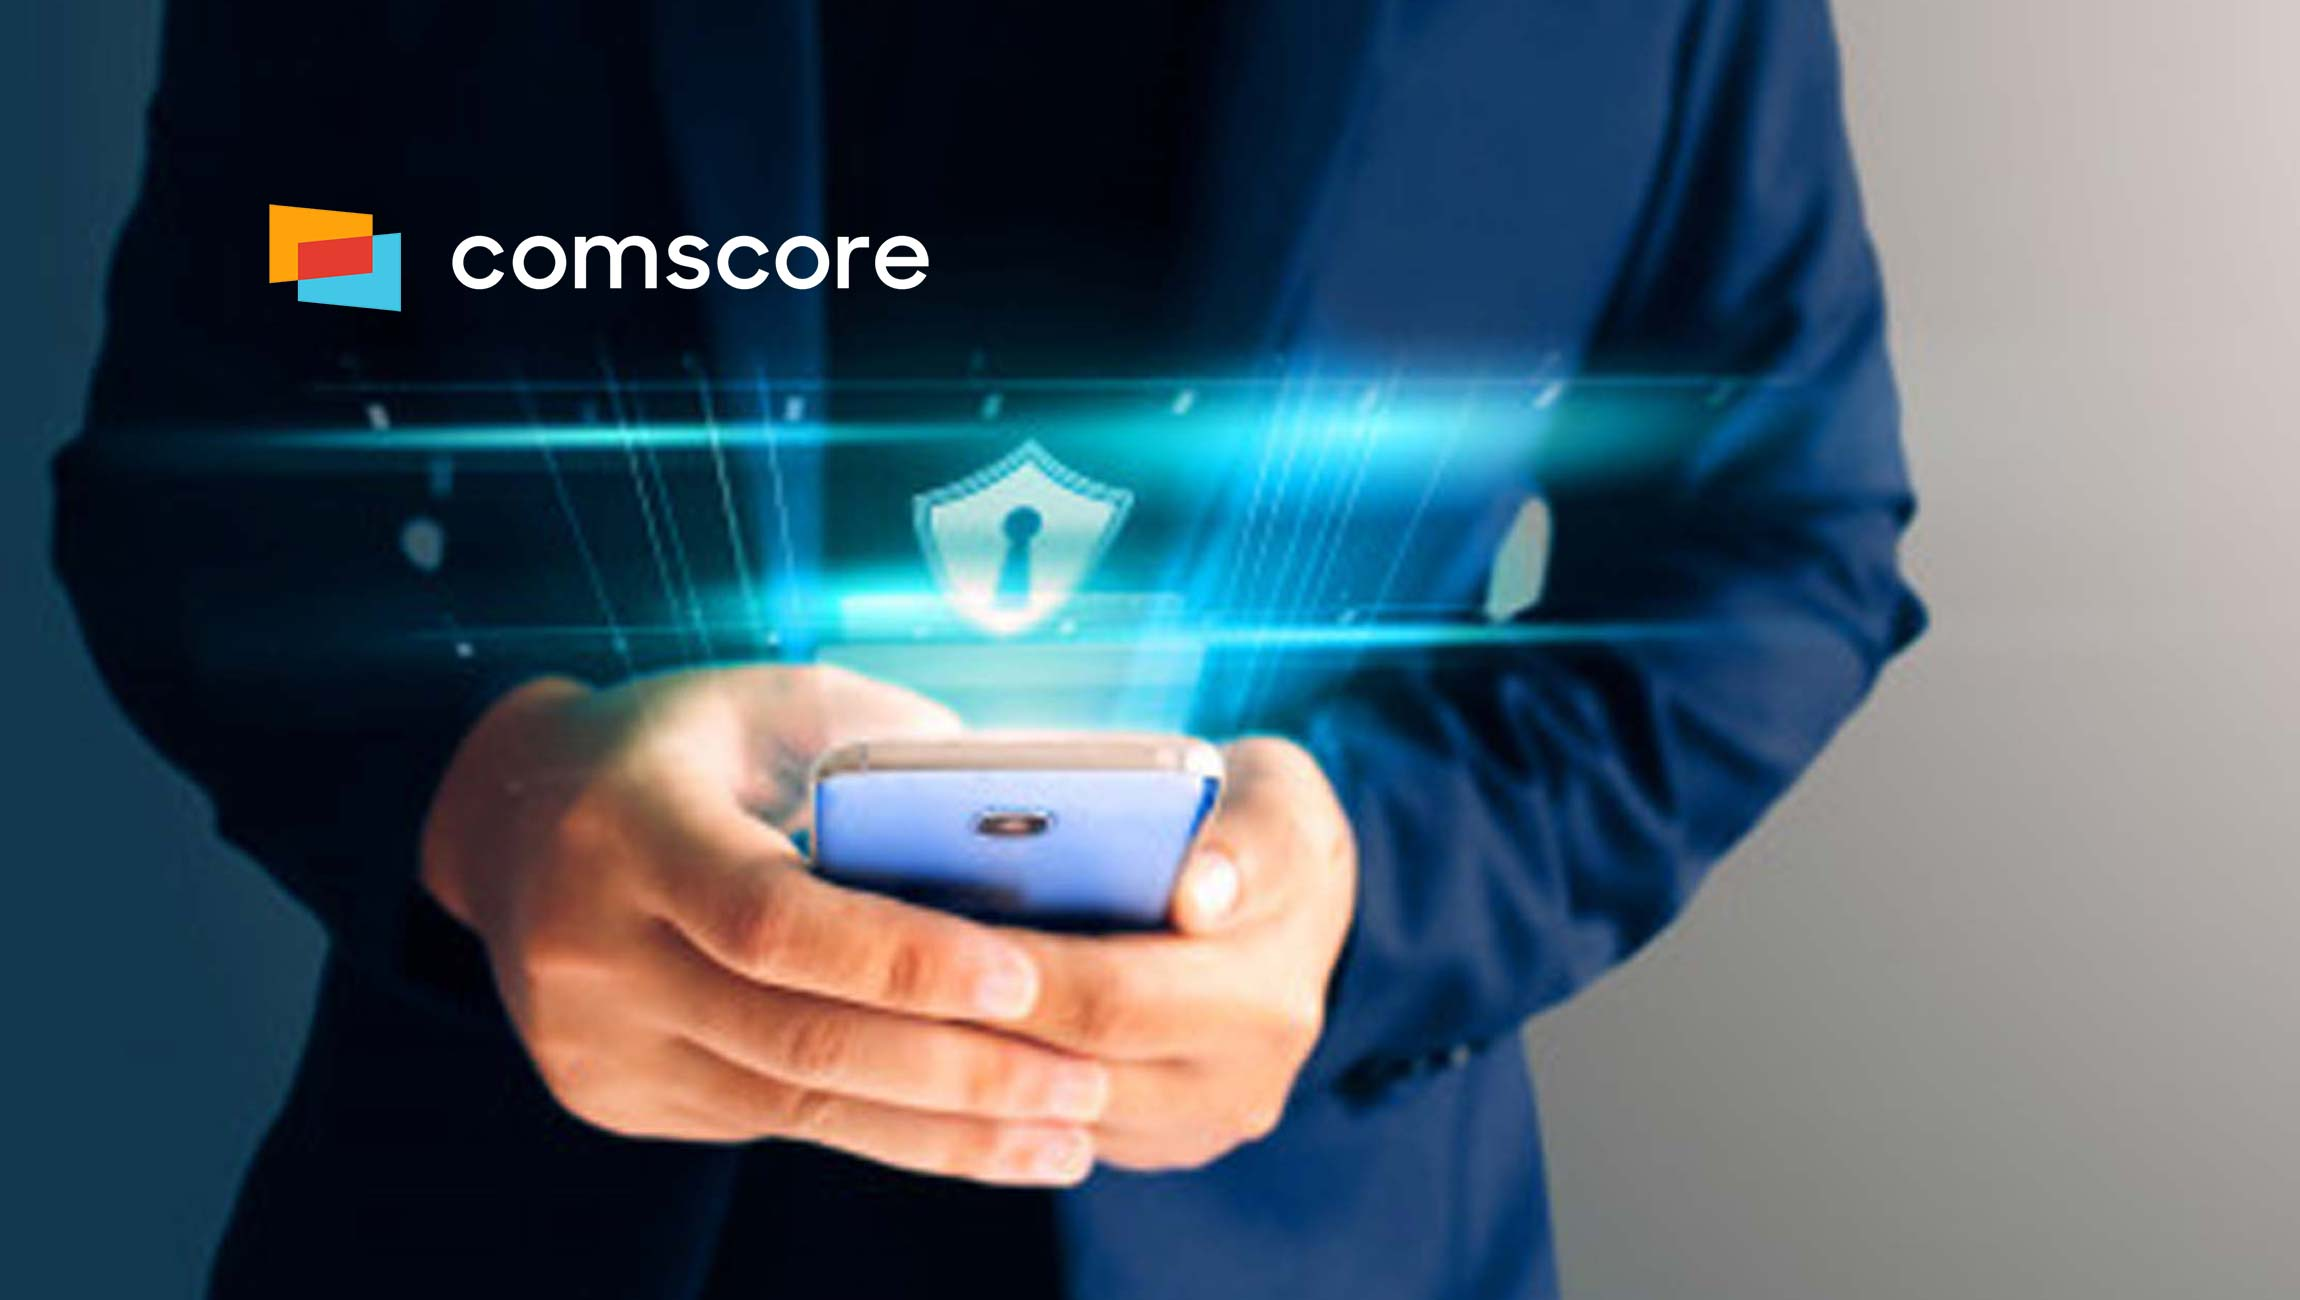 Comscore Continues Privacy-Focused Product Innovation with New US Patent